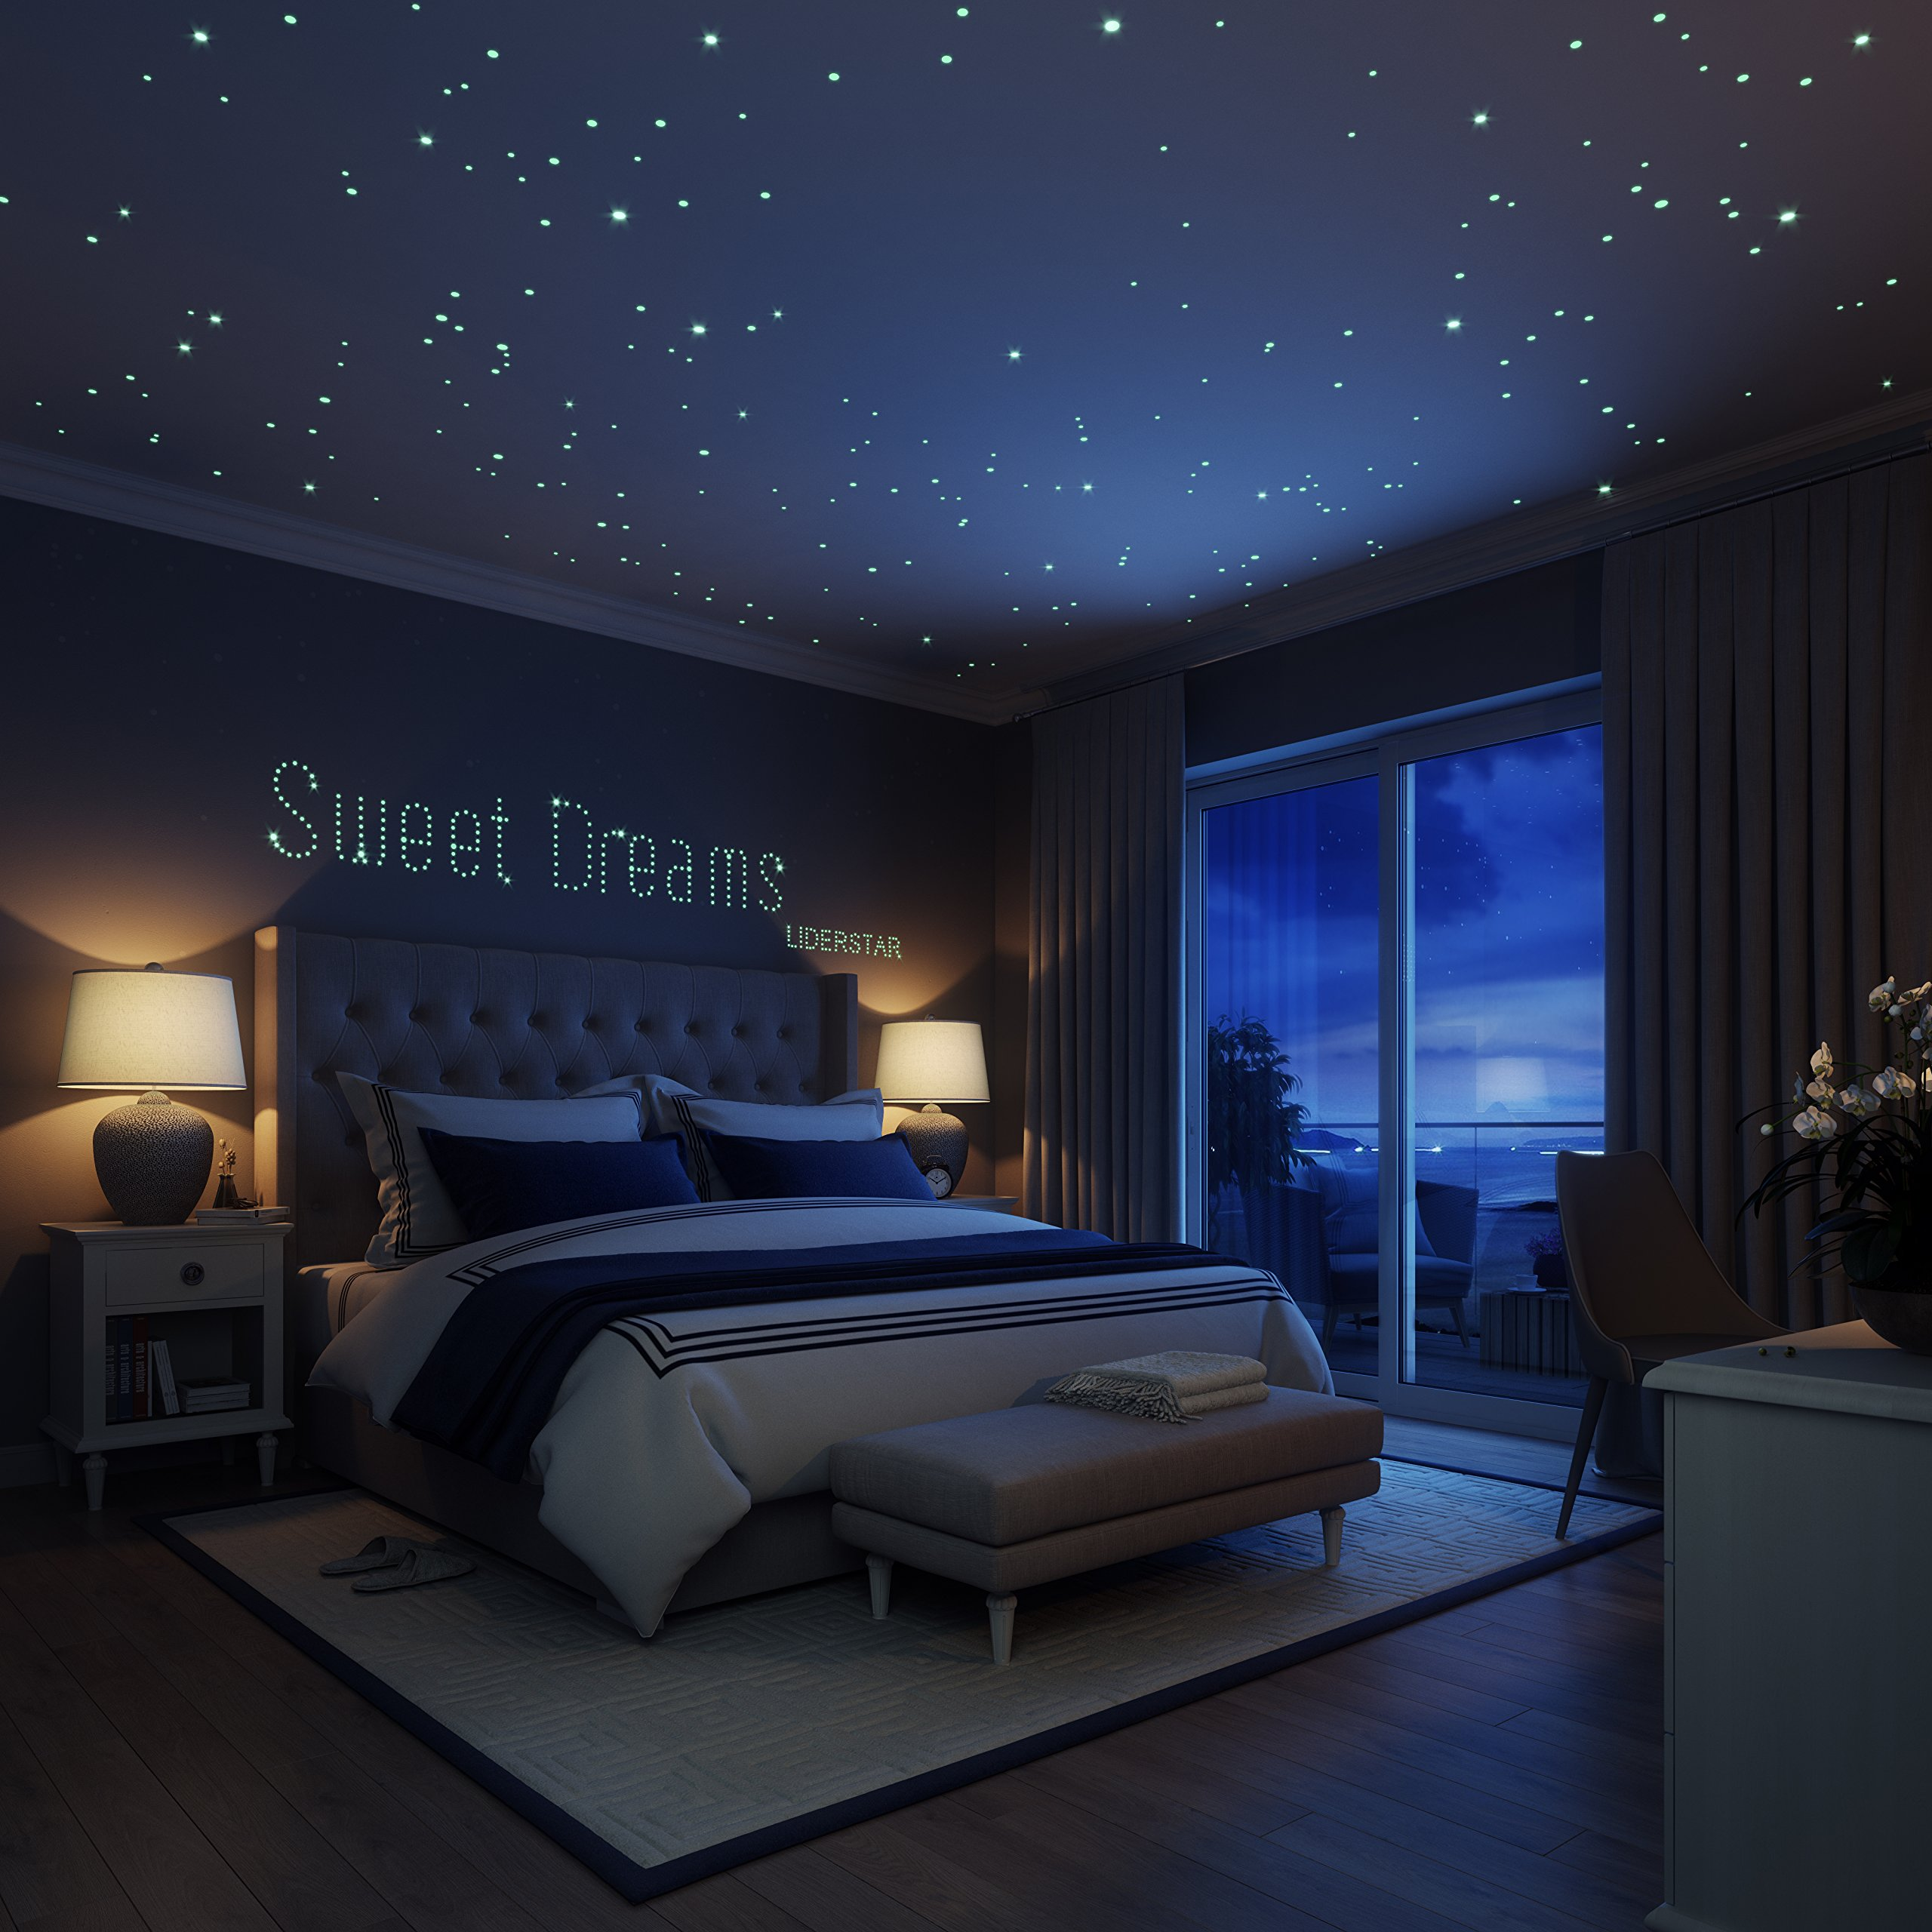 Glow In The Dark Stars Wall Stickers252 Adhesive Dots And Moon For